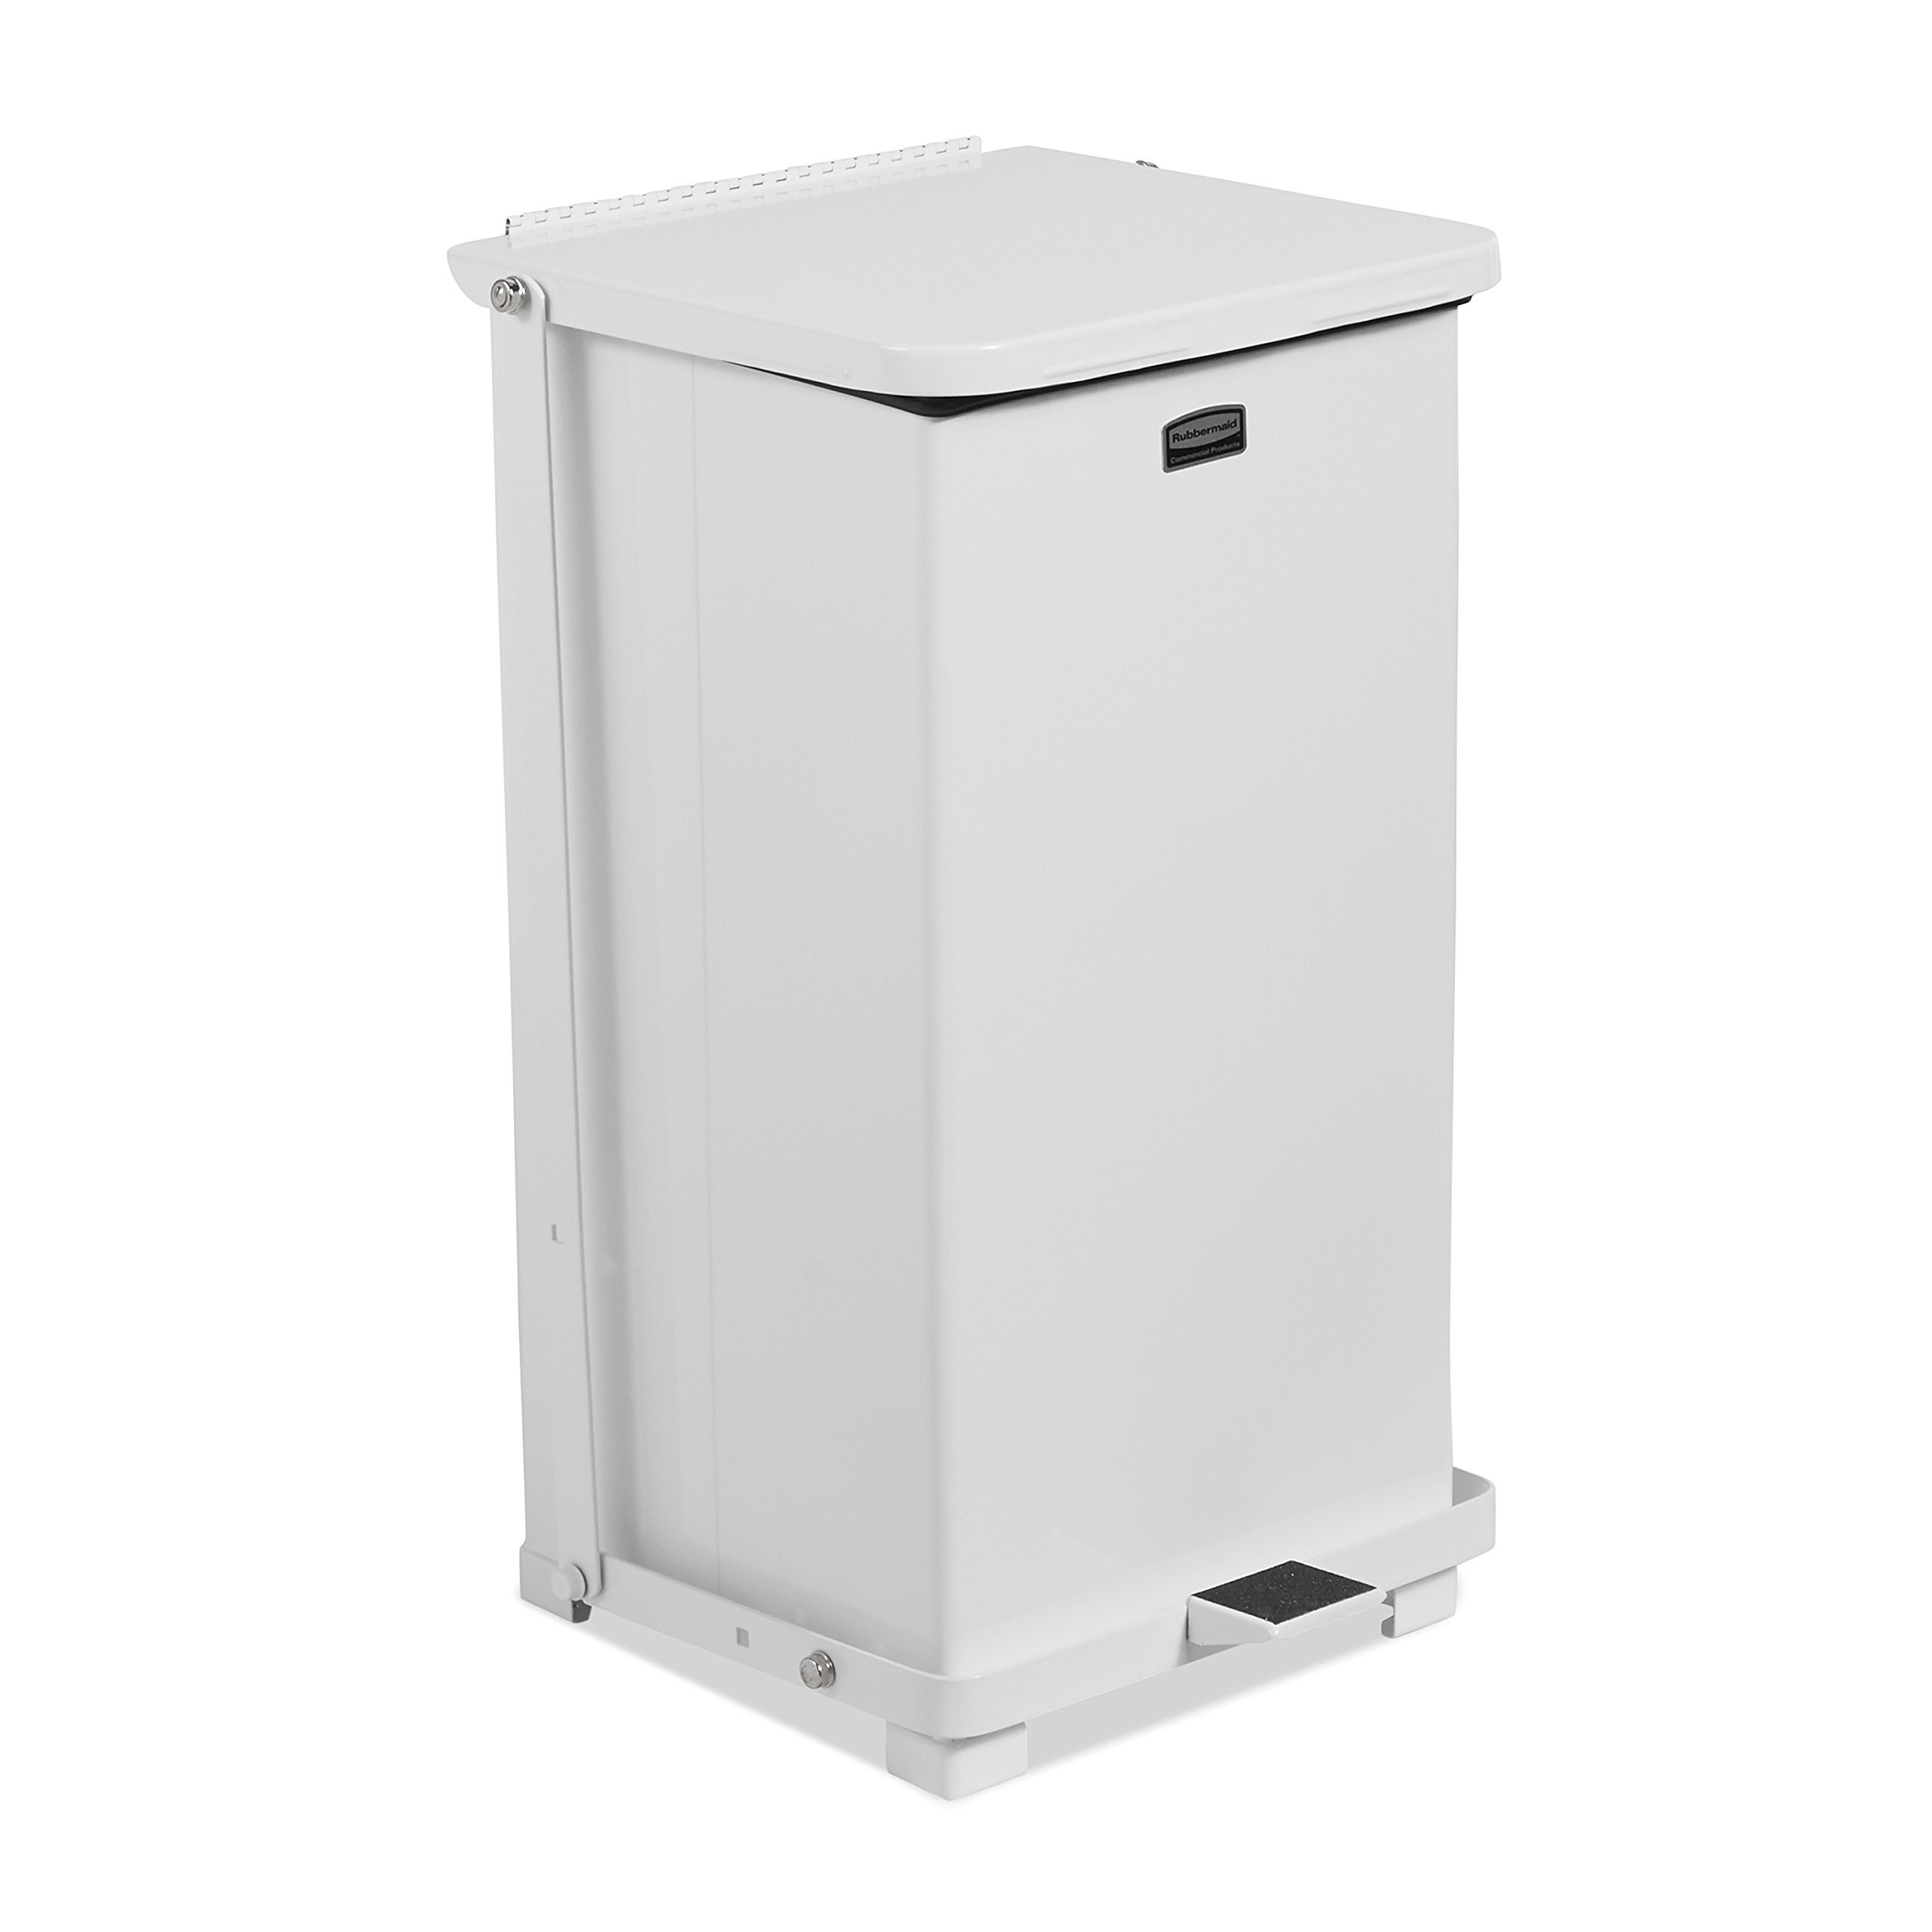 Rubbermaid Commercial Silent Defenders Quiet Step Trash Can with Rigid Liner, 12-Gallon, White